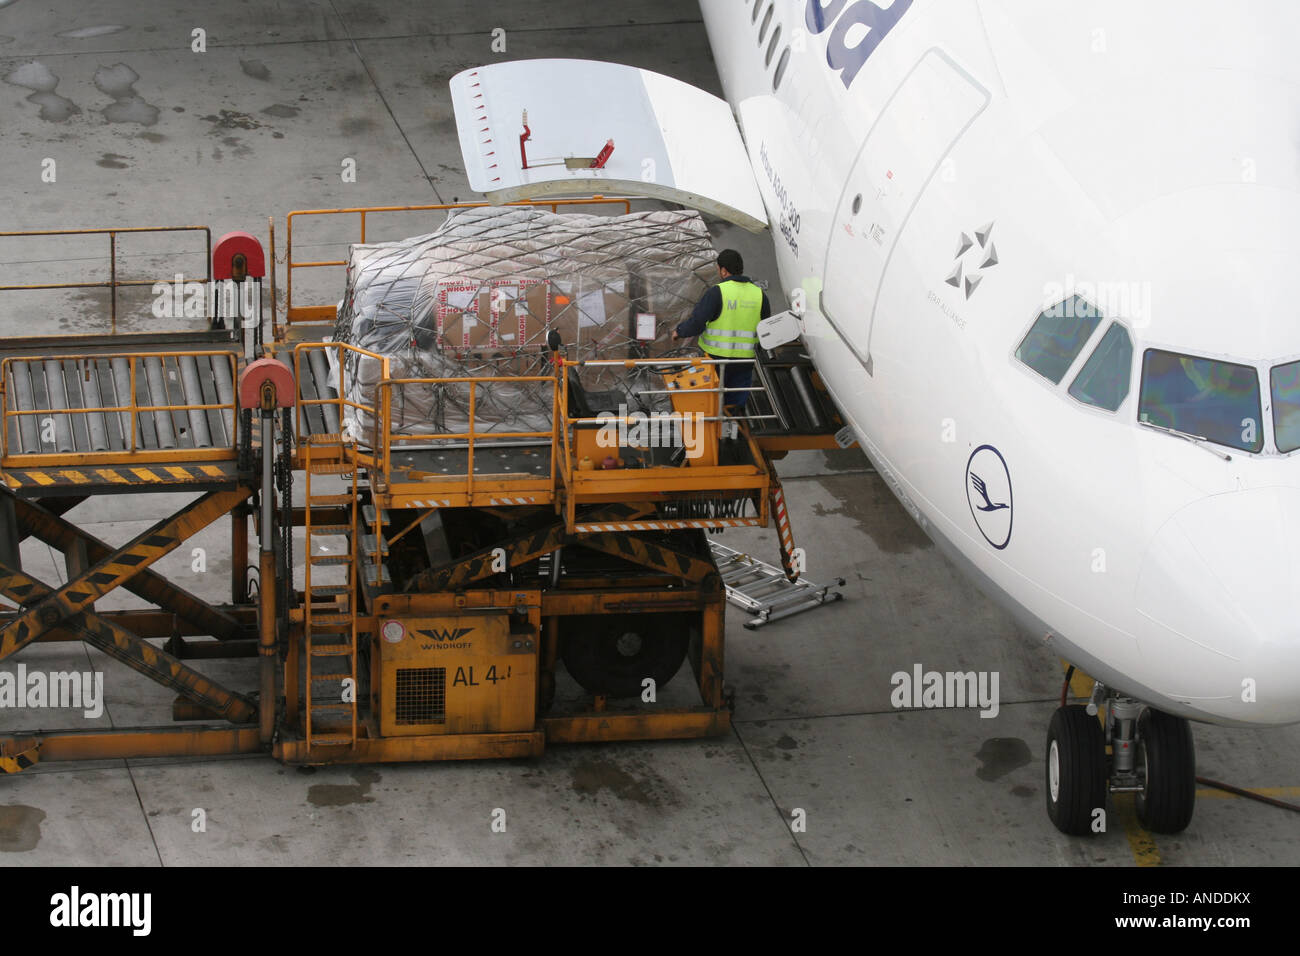 Loading air cargo on board a Lufthansa Airbus A340-300 jet plane. Global transport networks and supply chains. - Stock Image